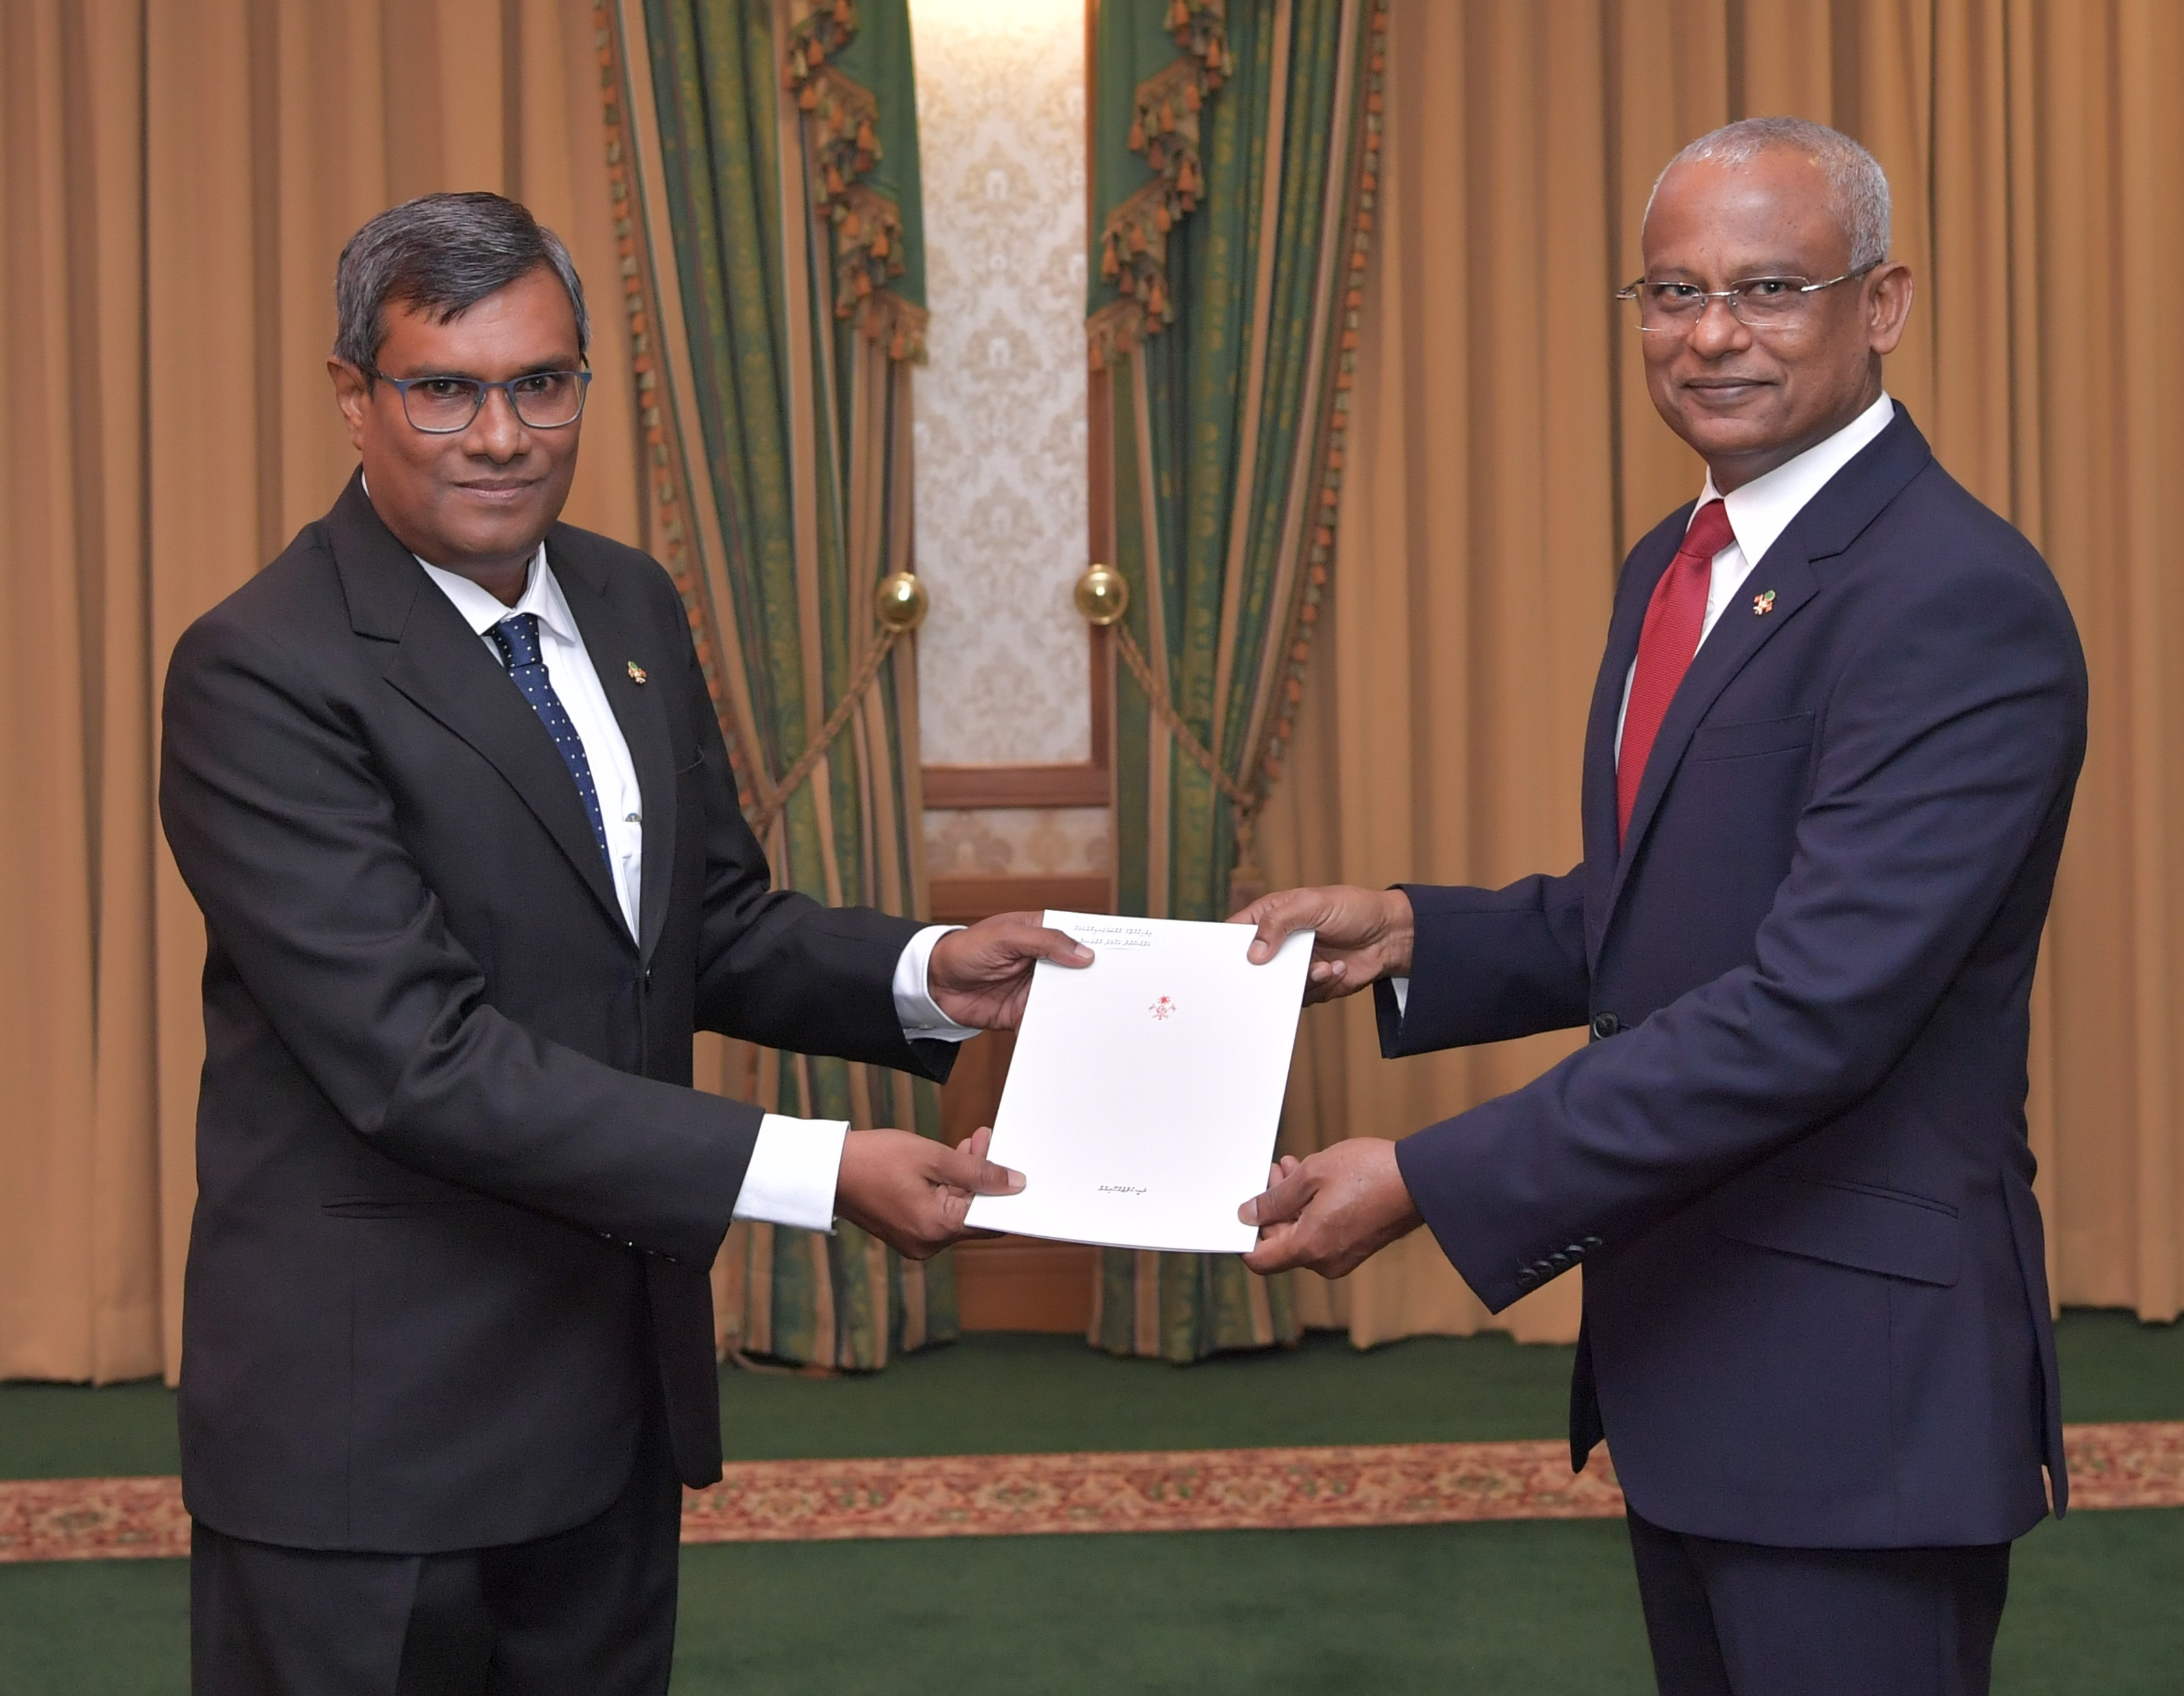 President appoints Ahmed Muthasim Adnan as Chief Justice of the Maldives